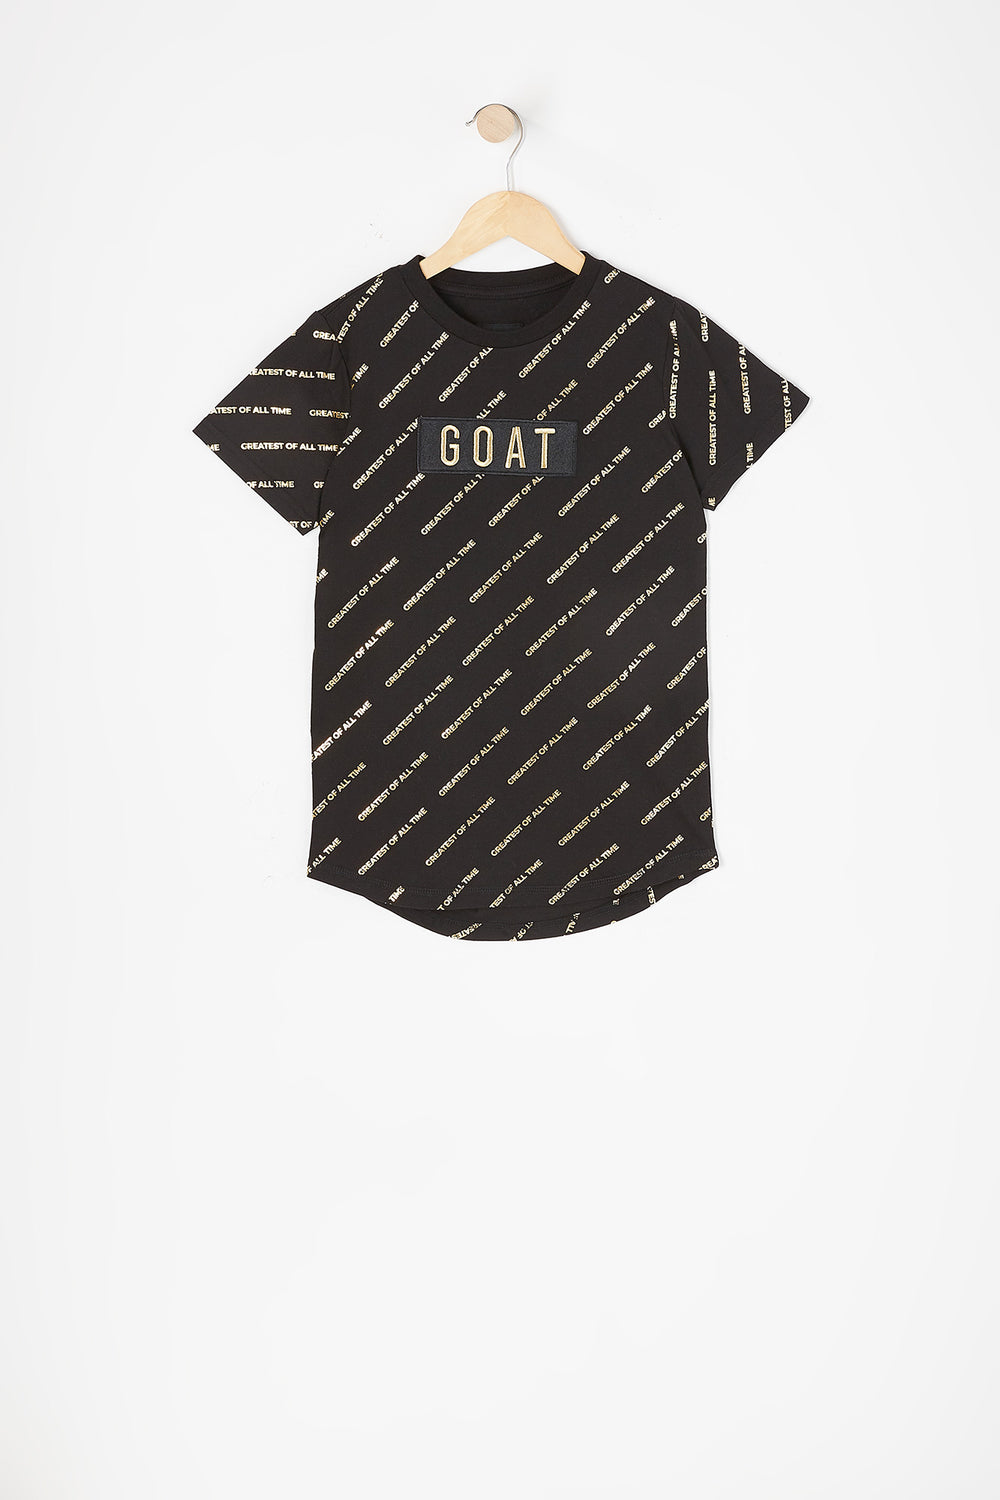 Boys Greatest of All Time Graphic Longline T-Shirt Black